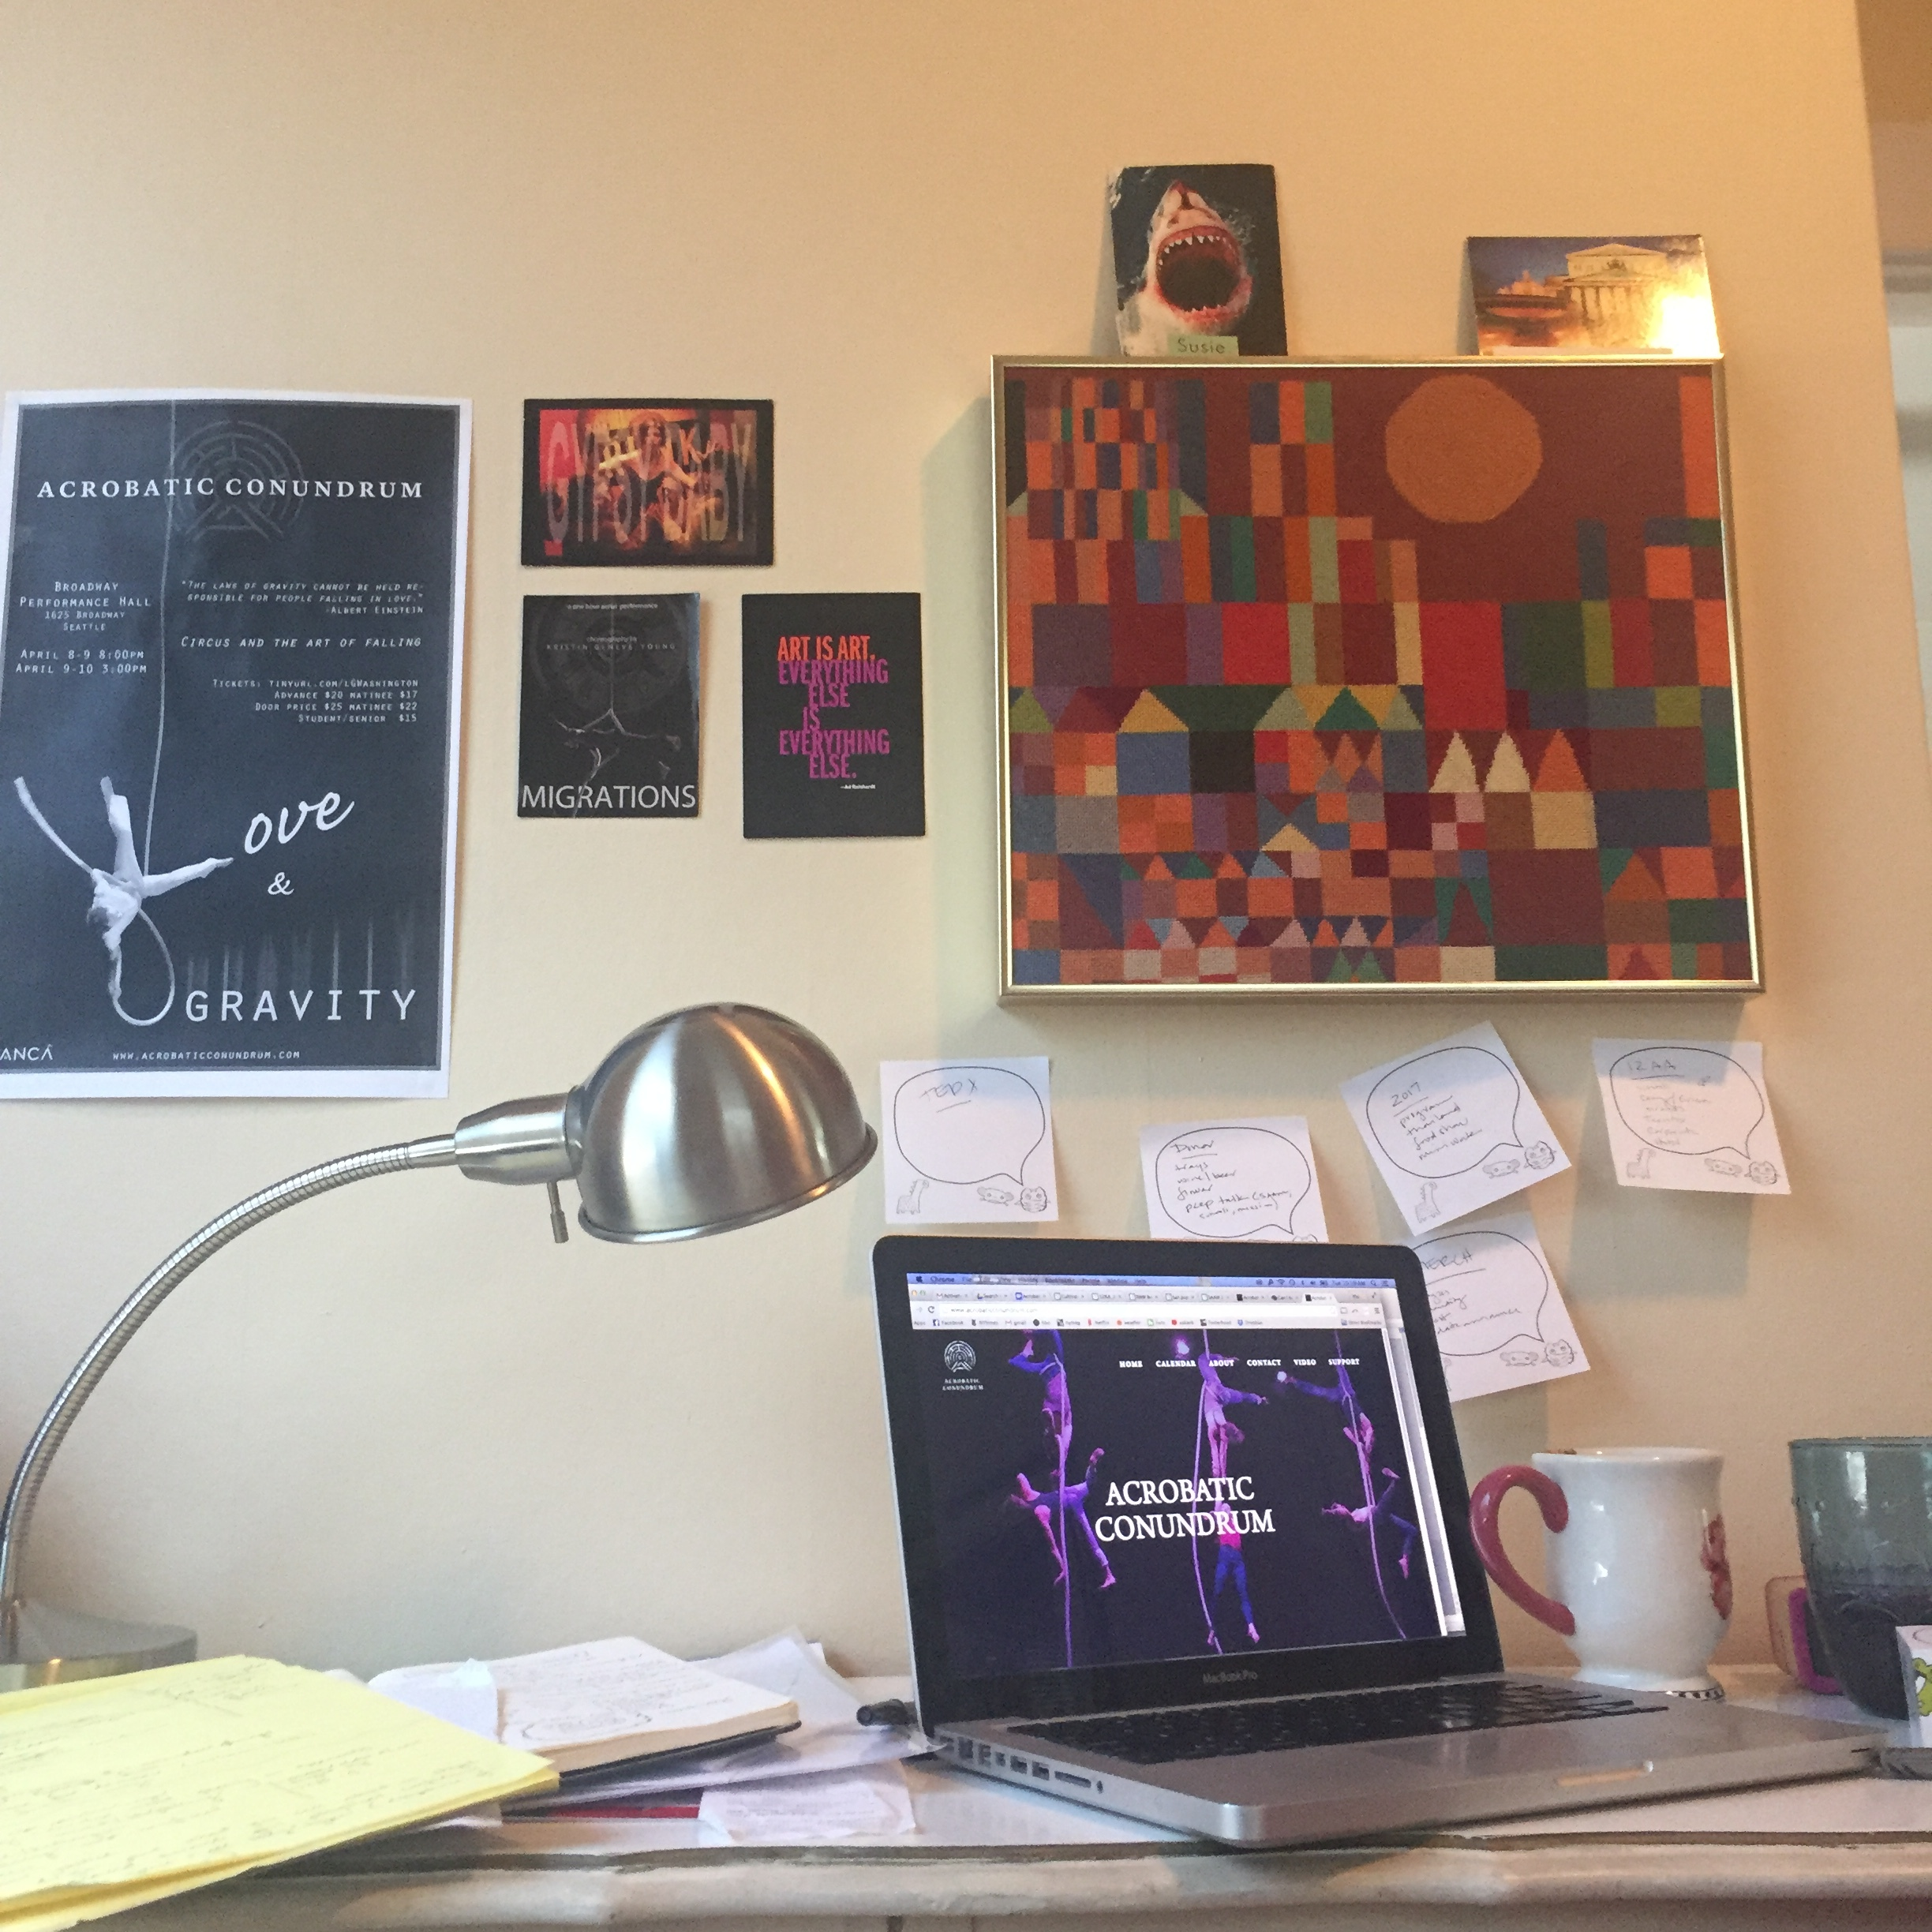 A view of Managing Director Susie Williams' desk.